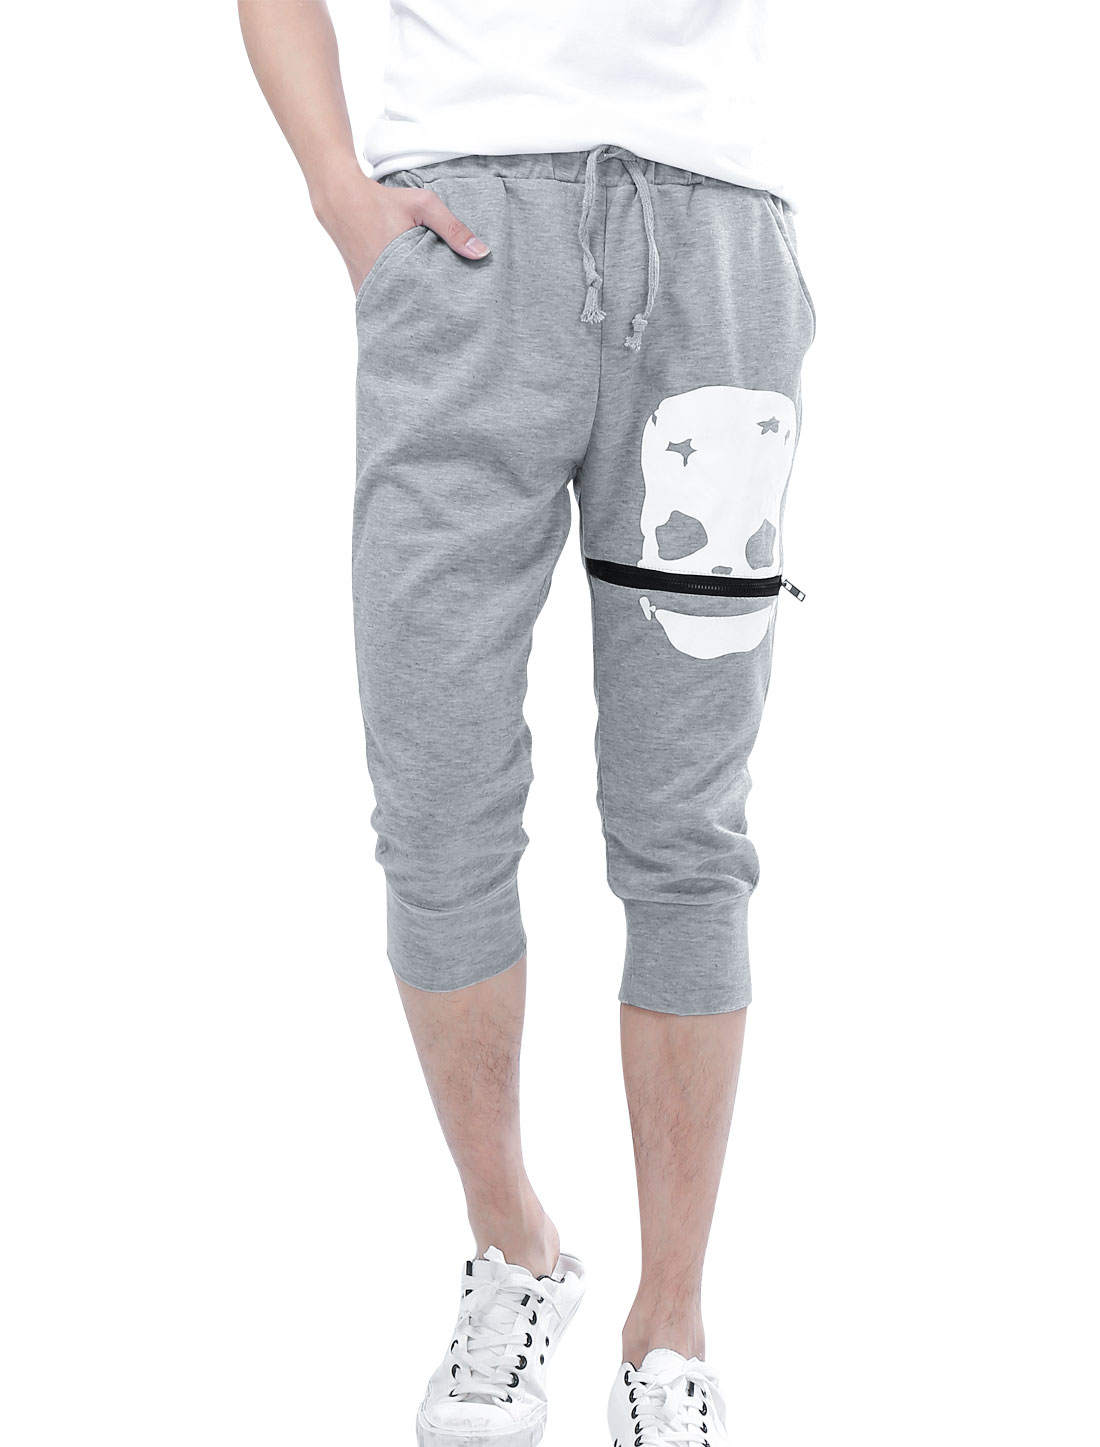 Men Drawstring Waist Zip-up Decor Stylish Capris Pants Light Gray W36